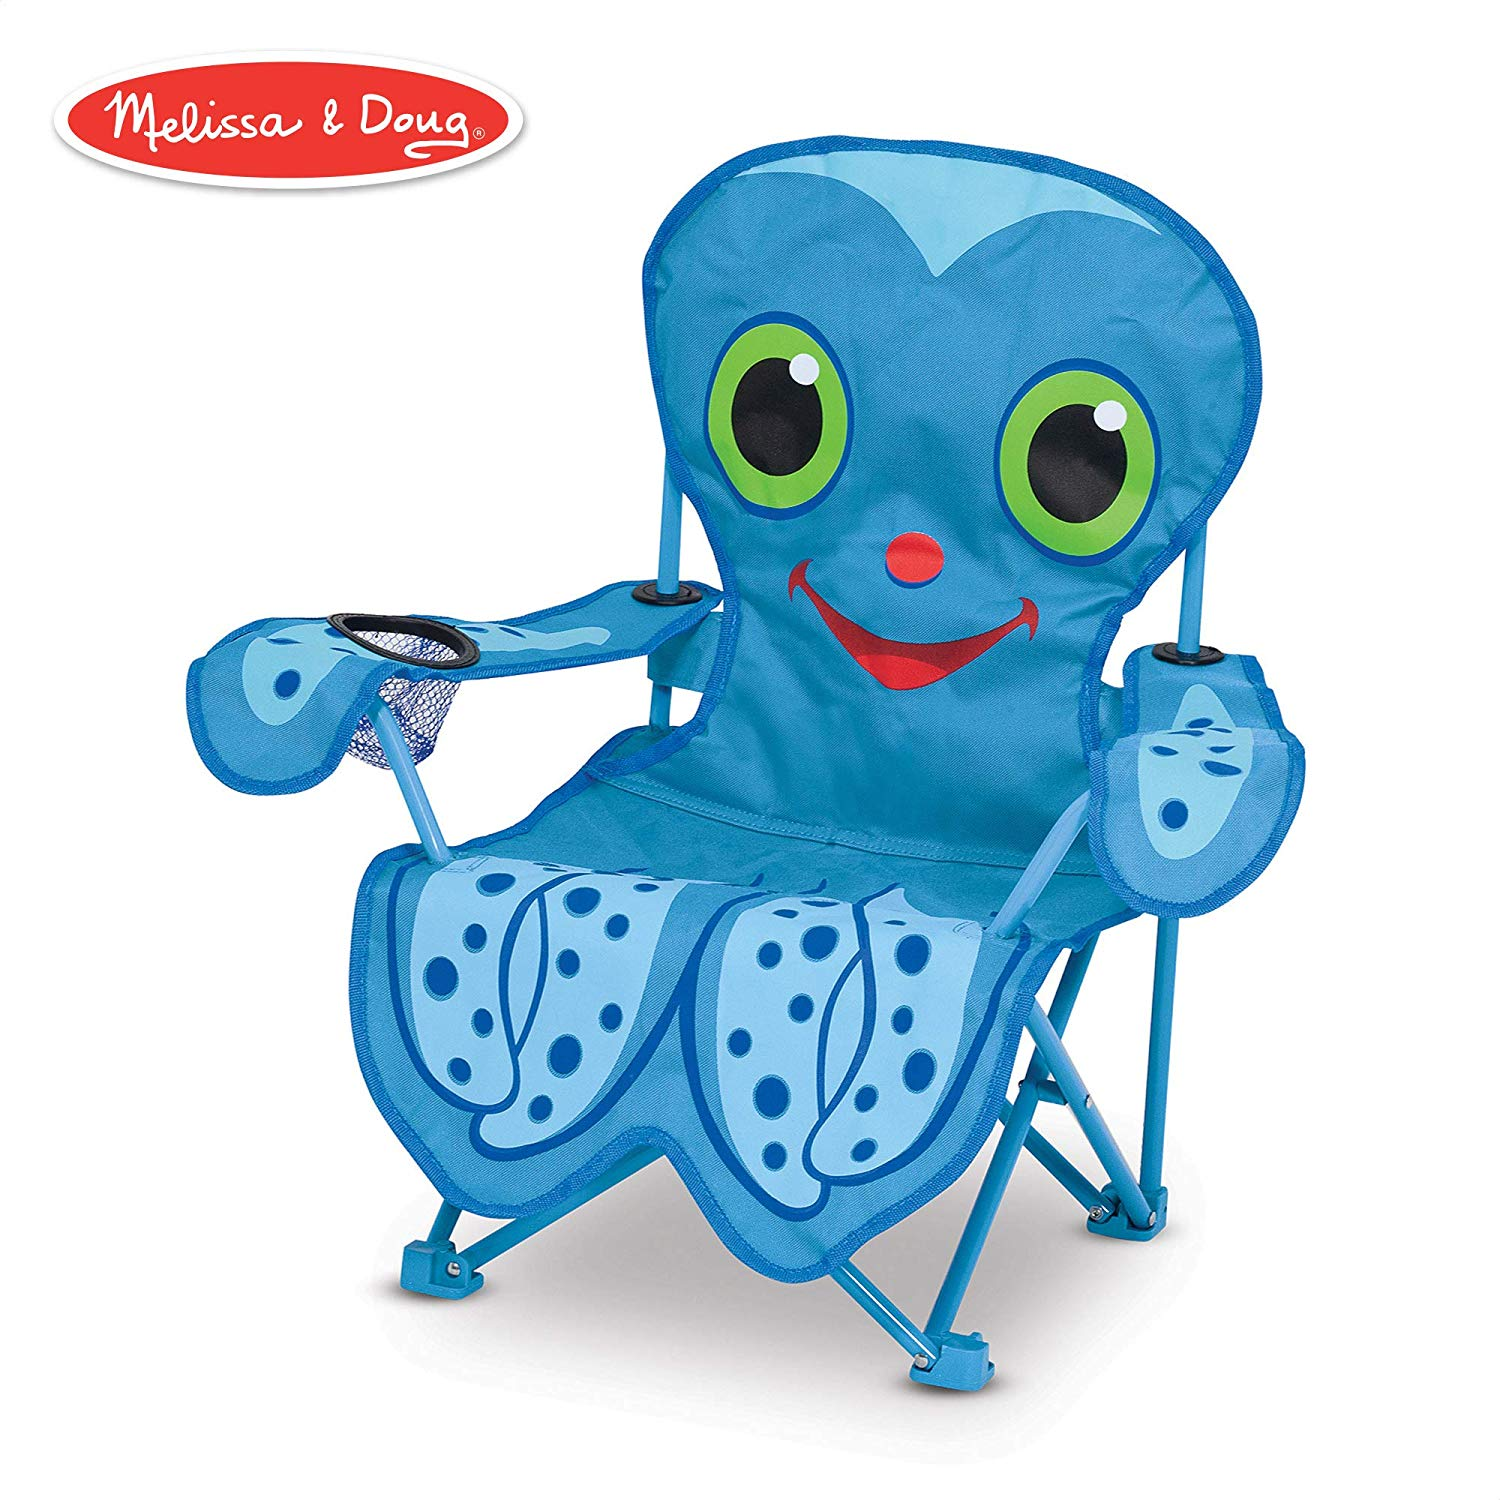 Giving up a chair for parent clipart royalty free Melissa & Doug Sunny Patch Flex Octopus Folding Beach Chair for Kids royalty free